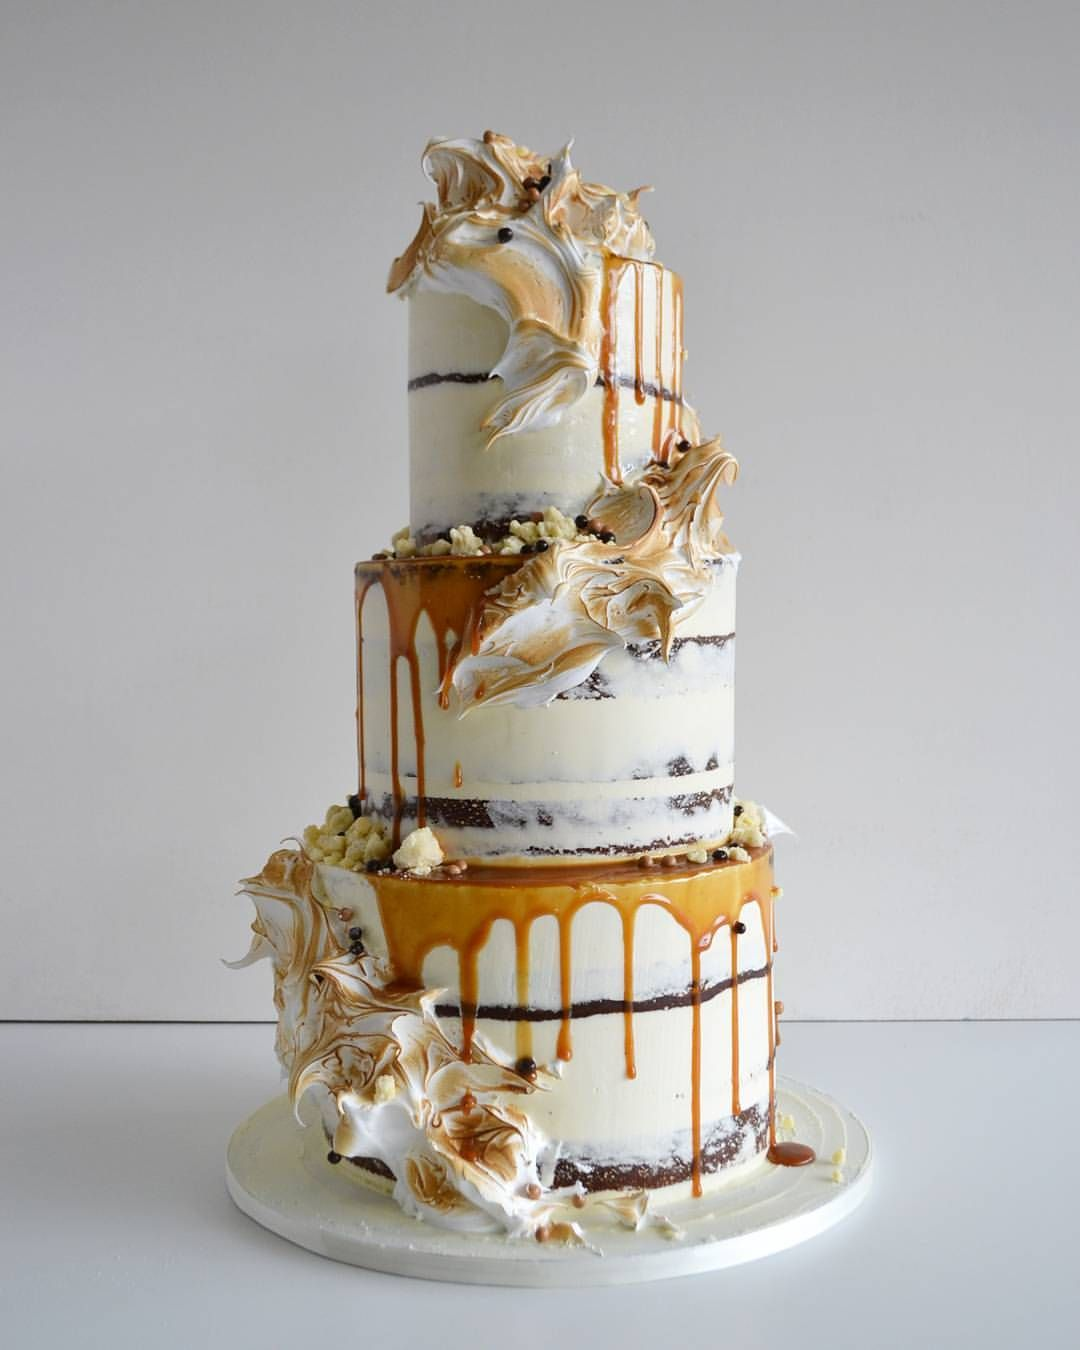 Golden gaytime cake! Inspired by the icecream, this cake is made of layers of caramel mud cake, toffee cake, caramel butter cream, chocolate ganache and for some added fun... CREAM CHEESE buttercream.... oh my!!! With torched meringue, toffee drizzles, biscuit crumb and chocolate pearls. X #goldengaytime